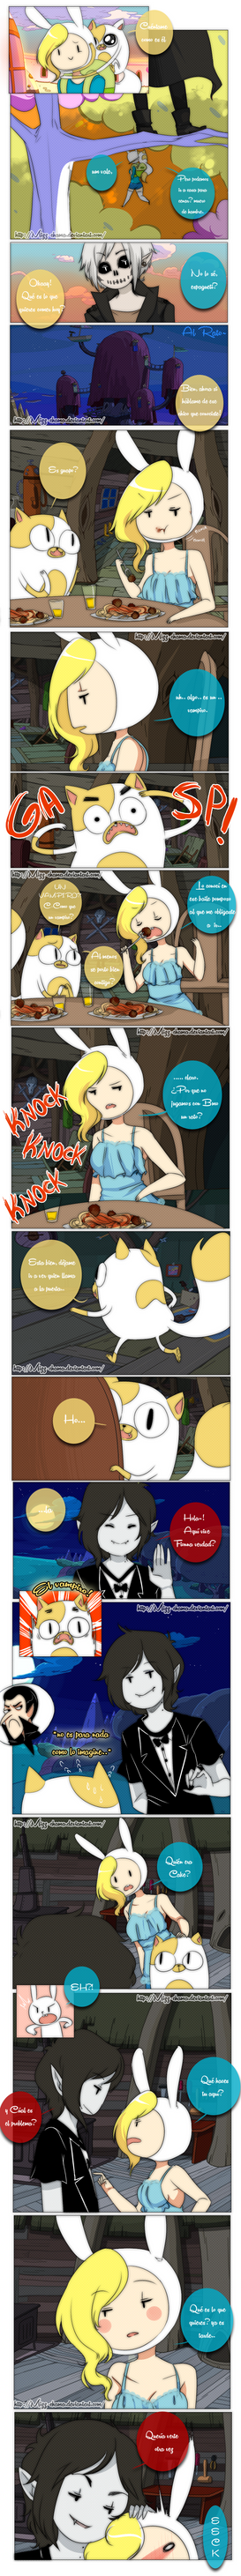 When I met you page 20. by KuroiiFox